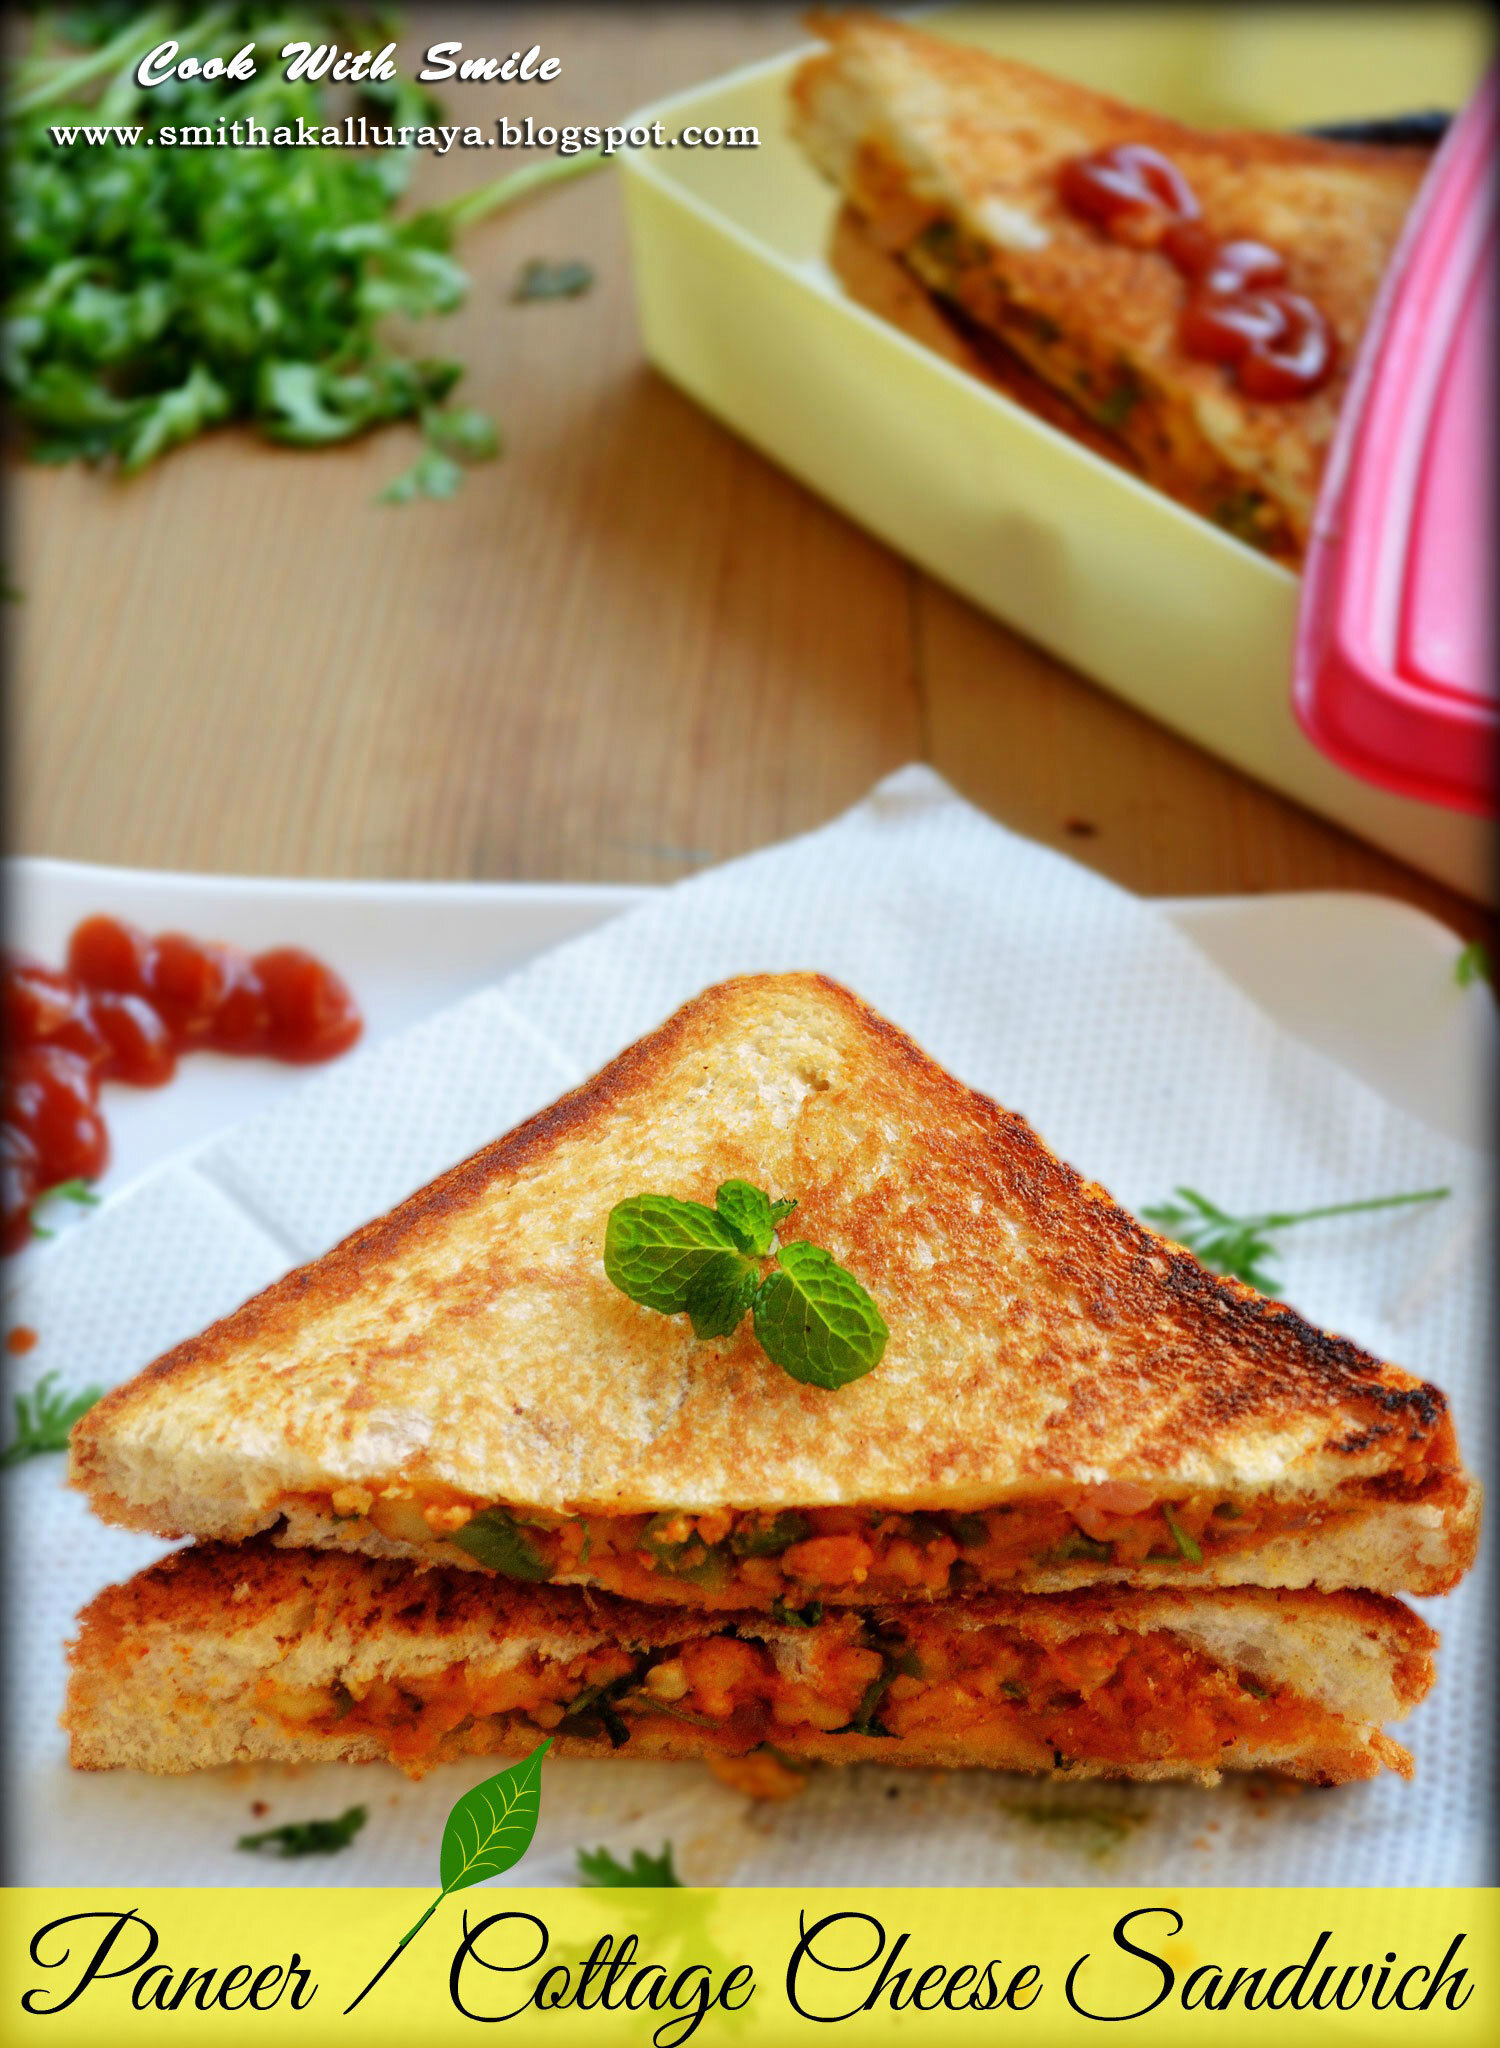 PANEER SANDWICH / VEG COTTAGE CHEESE SANDWICH